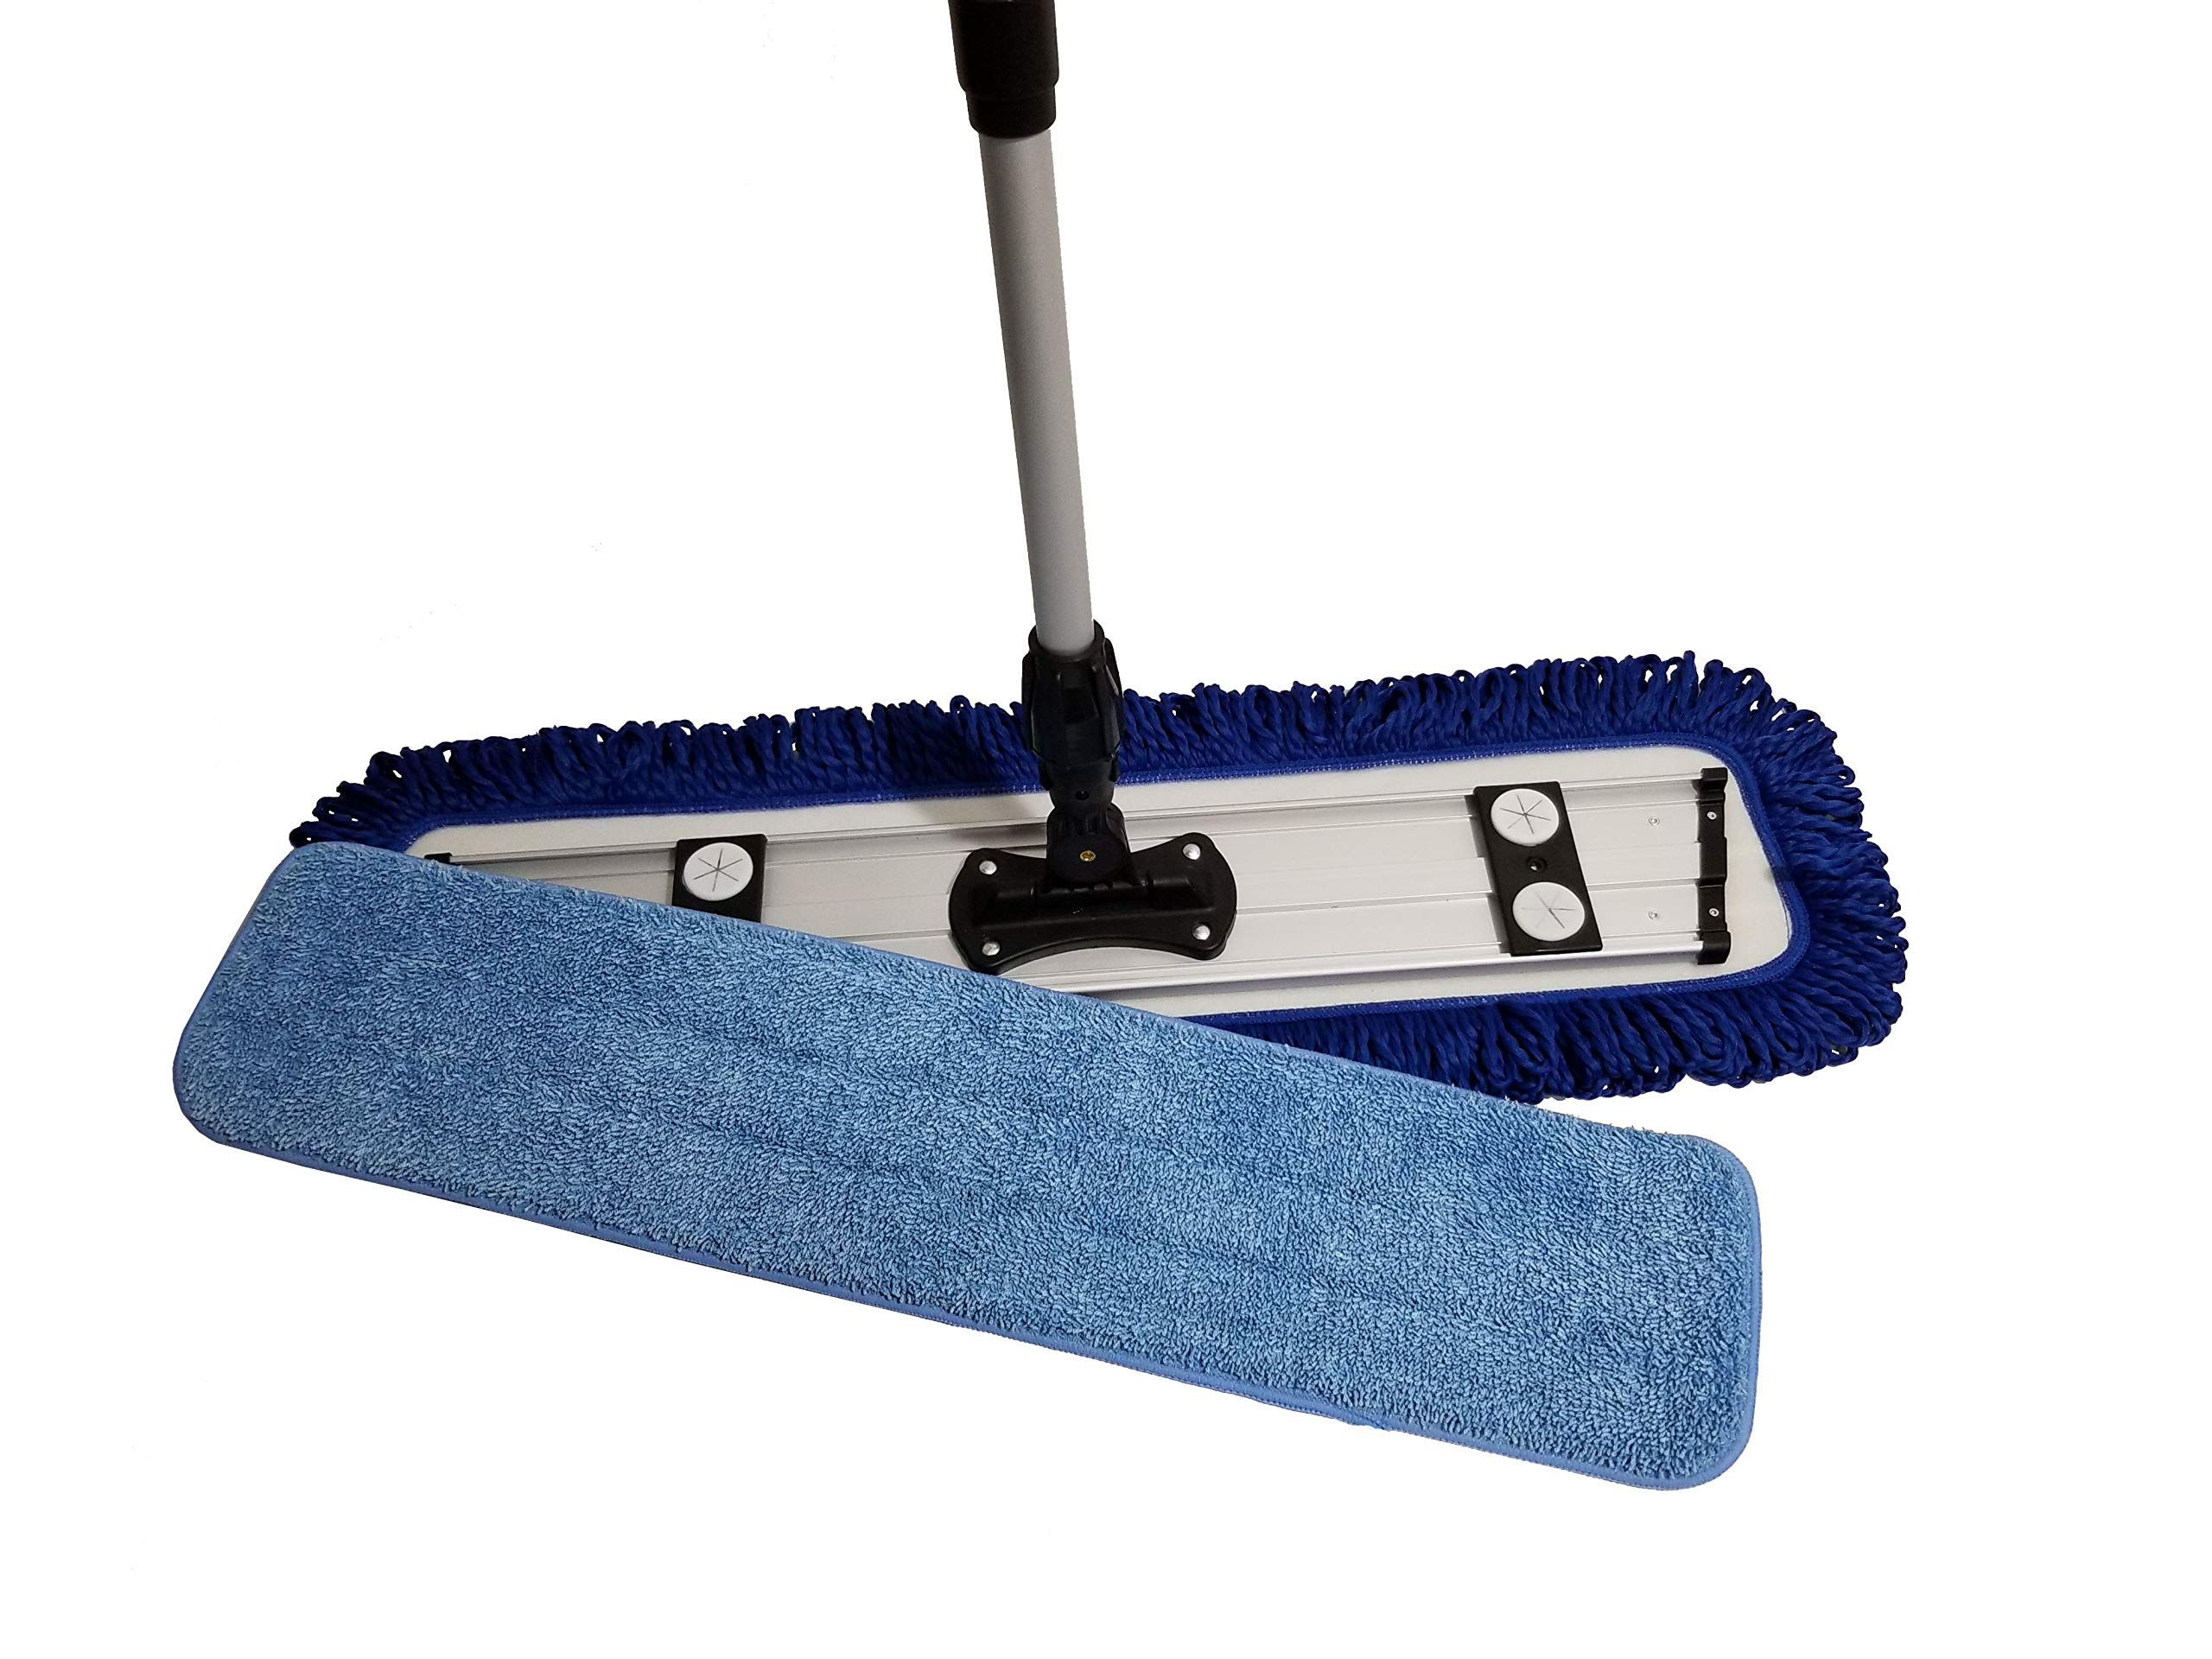 Microfiber Mop Professional Grade 24'' Kit by IdaSmart | Robust Aluminum Handle & Frame | 2 Premium Mop Pads | Hardwood, Laminate, Tile, Vinyl, Stone and Concrete Floor Care and Cleaning